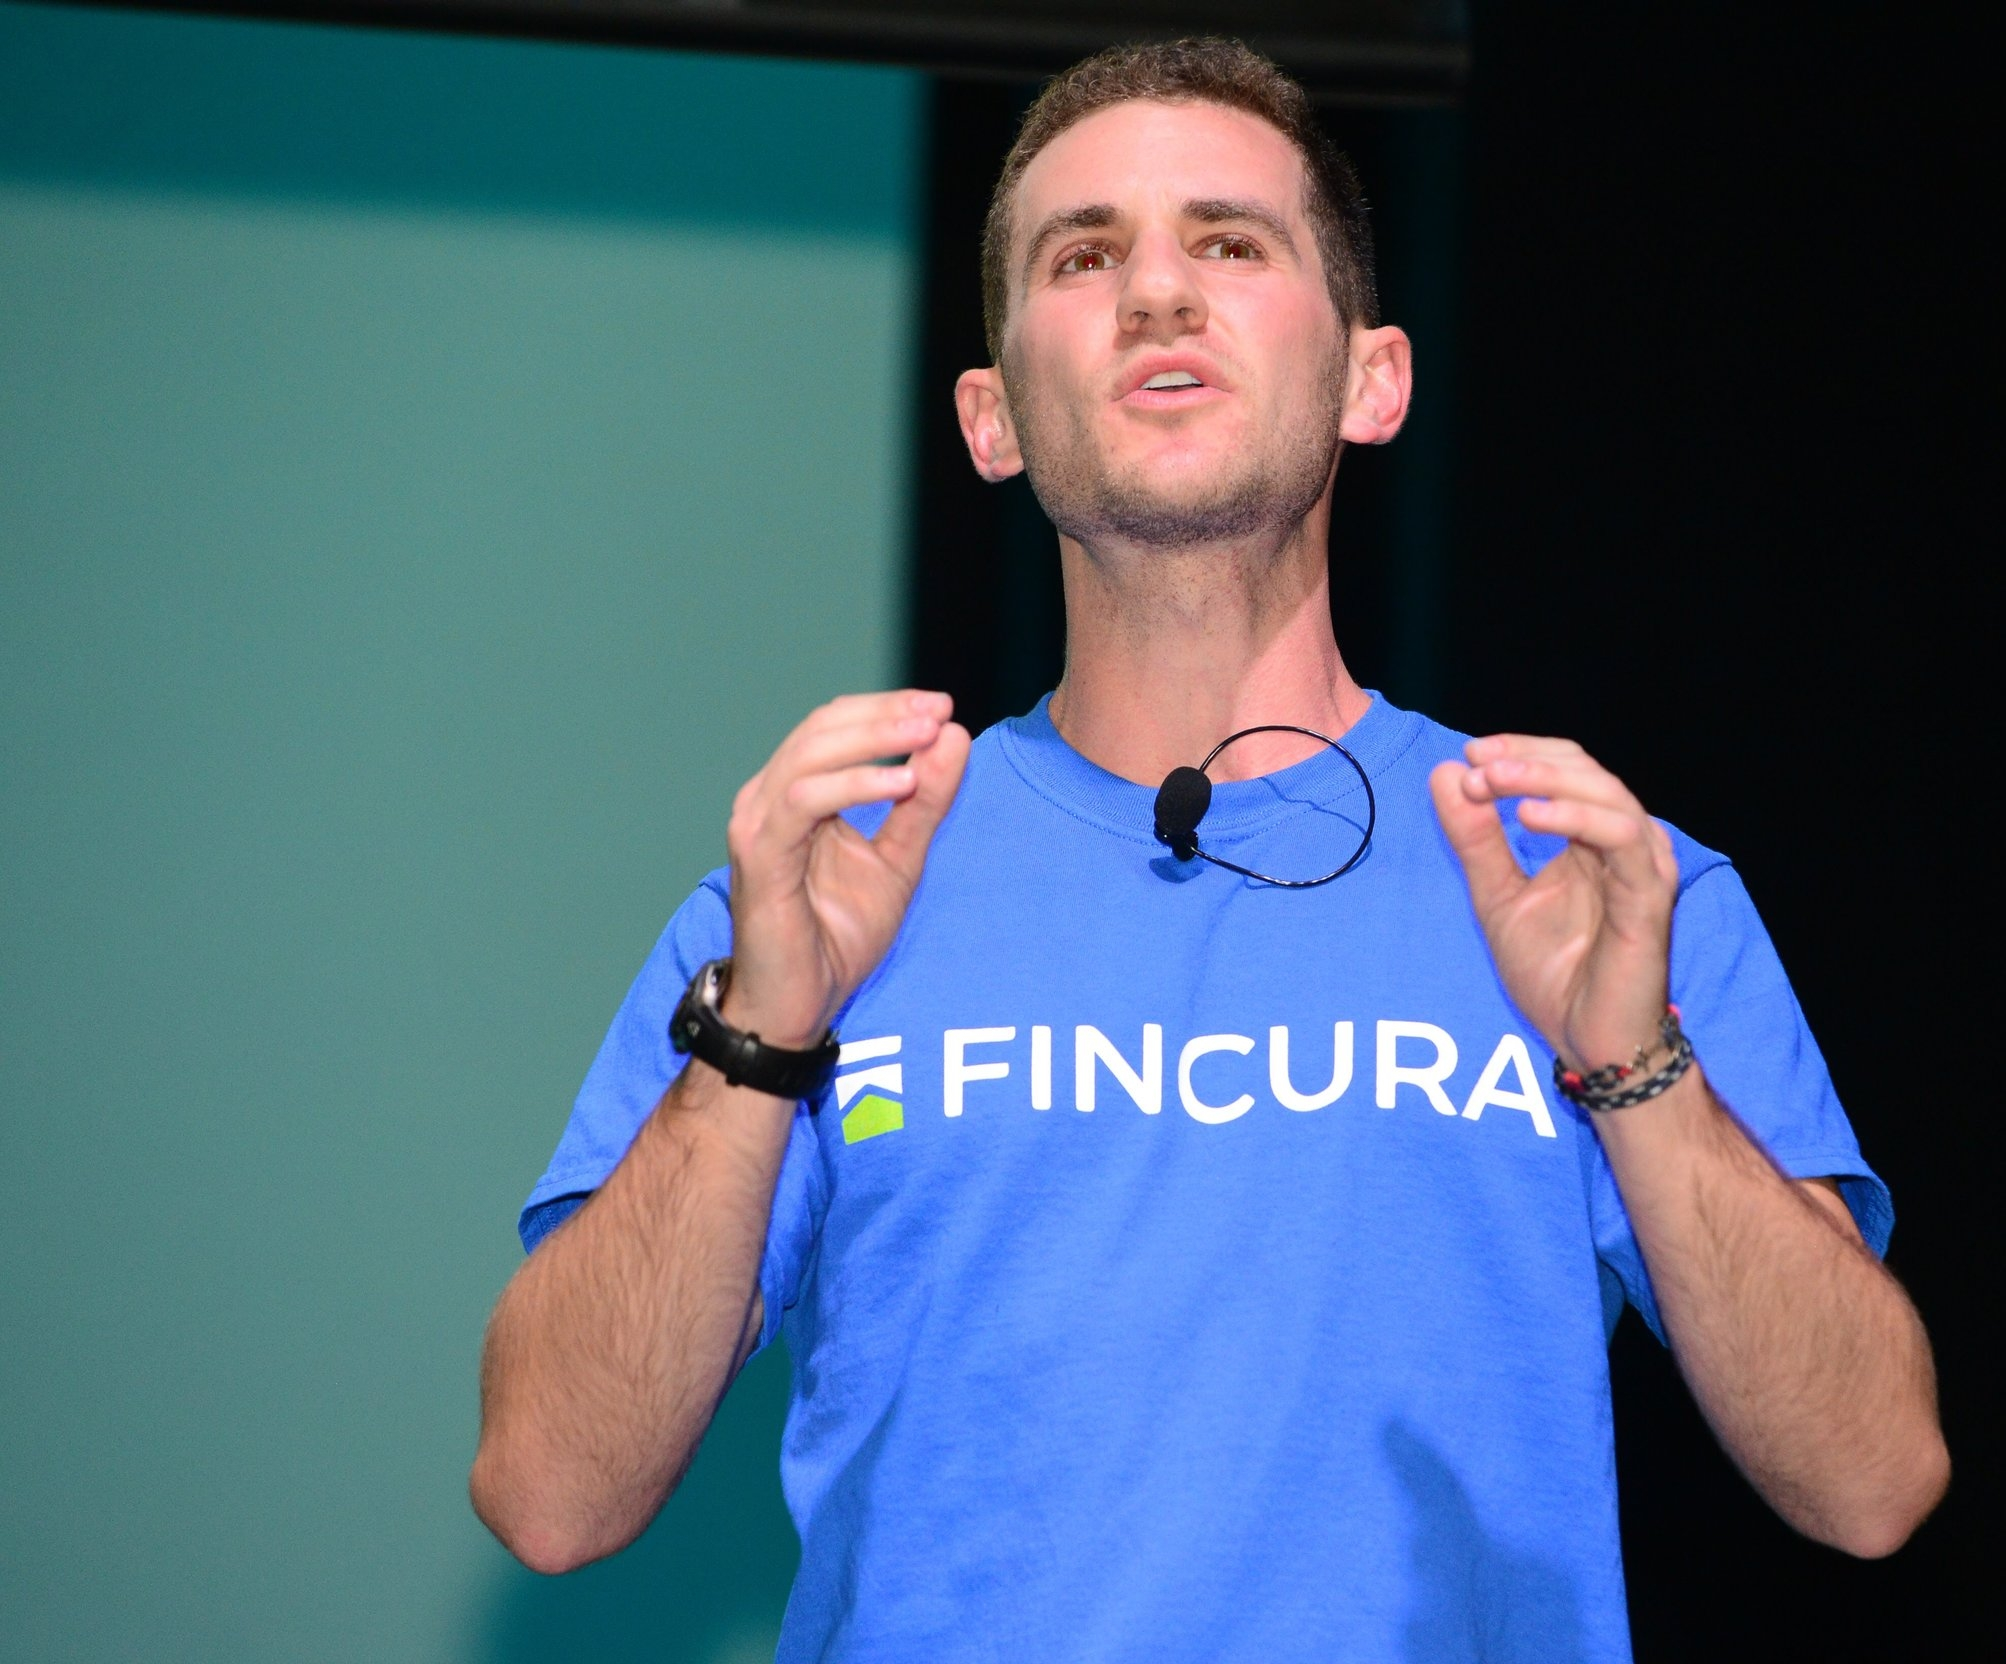 The Role of Technology & Data - Don't miss FINCURA's co-founder and CEO, Max Blumenthal on a panel discussion!3:30pm Wednesday the 28thSee the Full Schedule Here